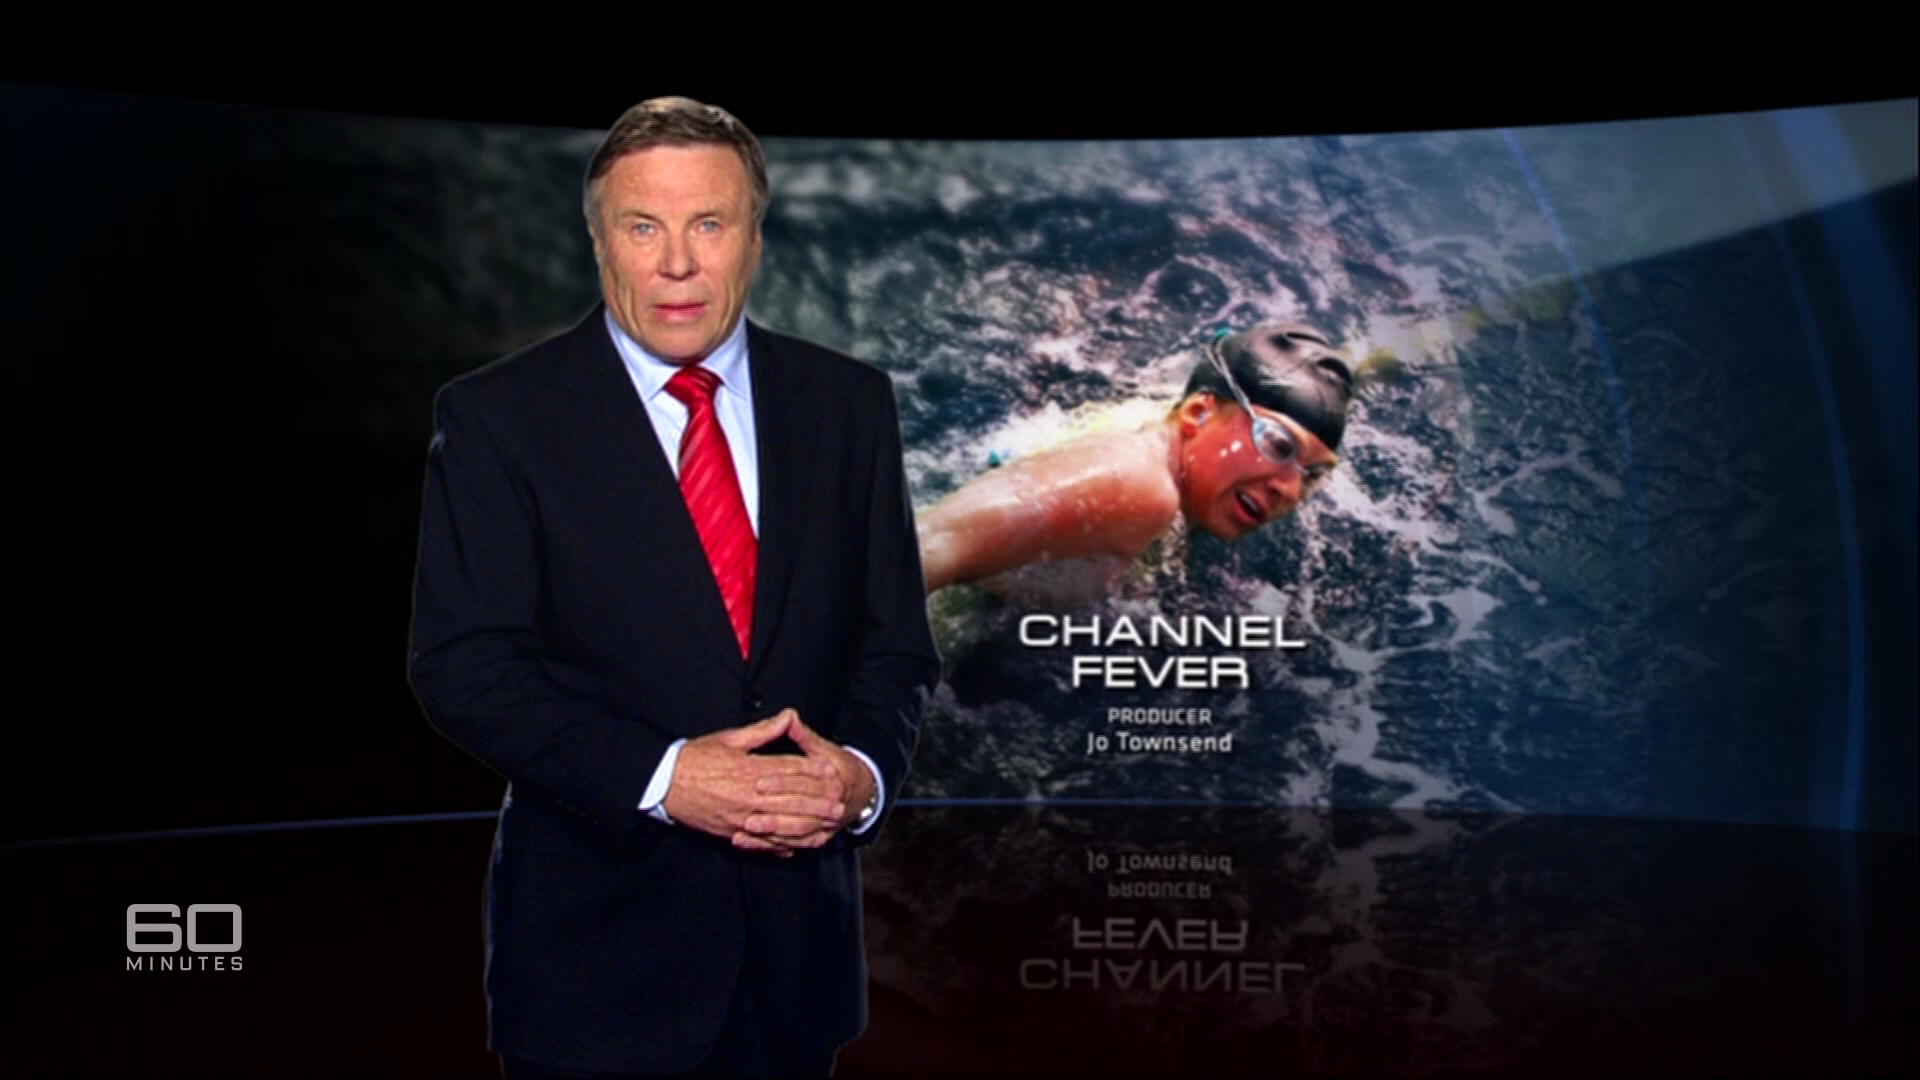 Channel Fever (2011)